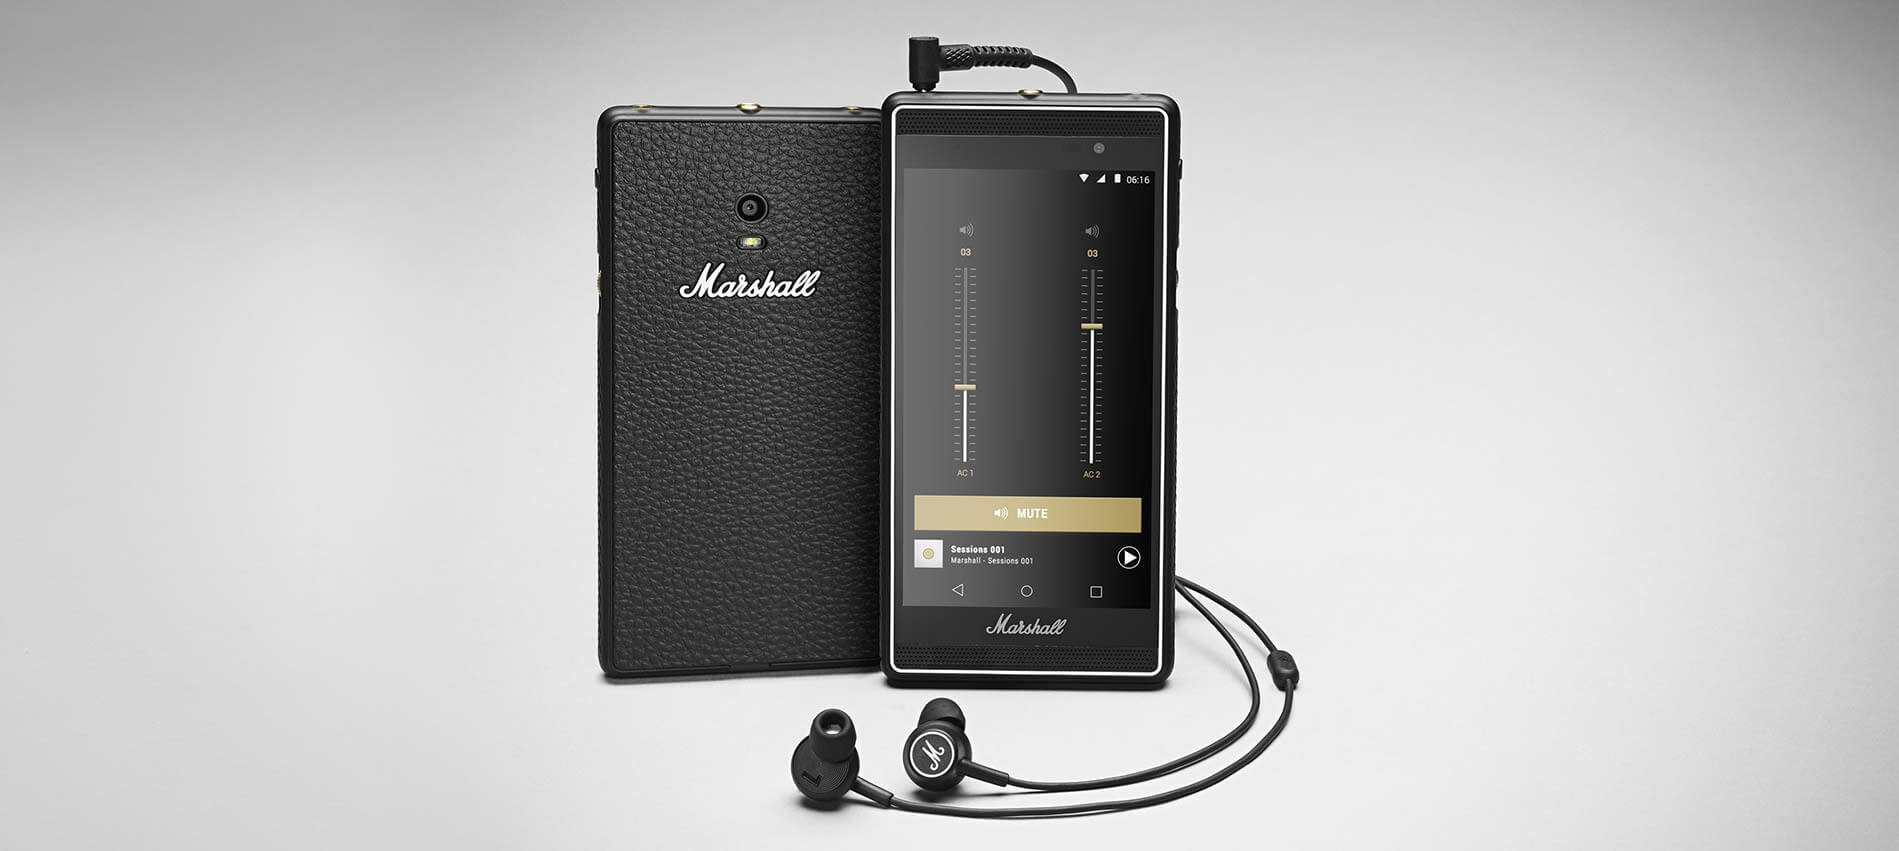 marshall london hight quality audio phone